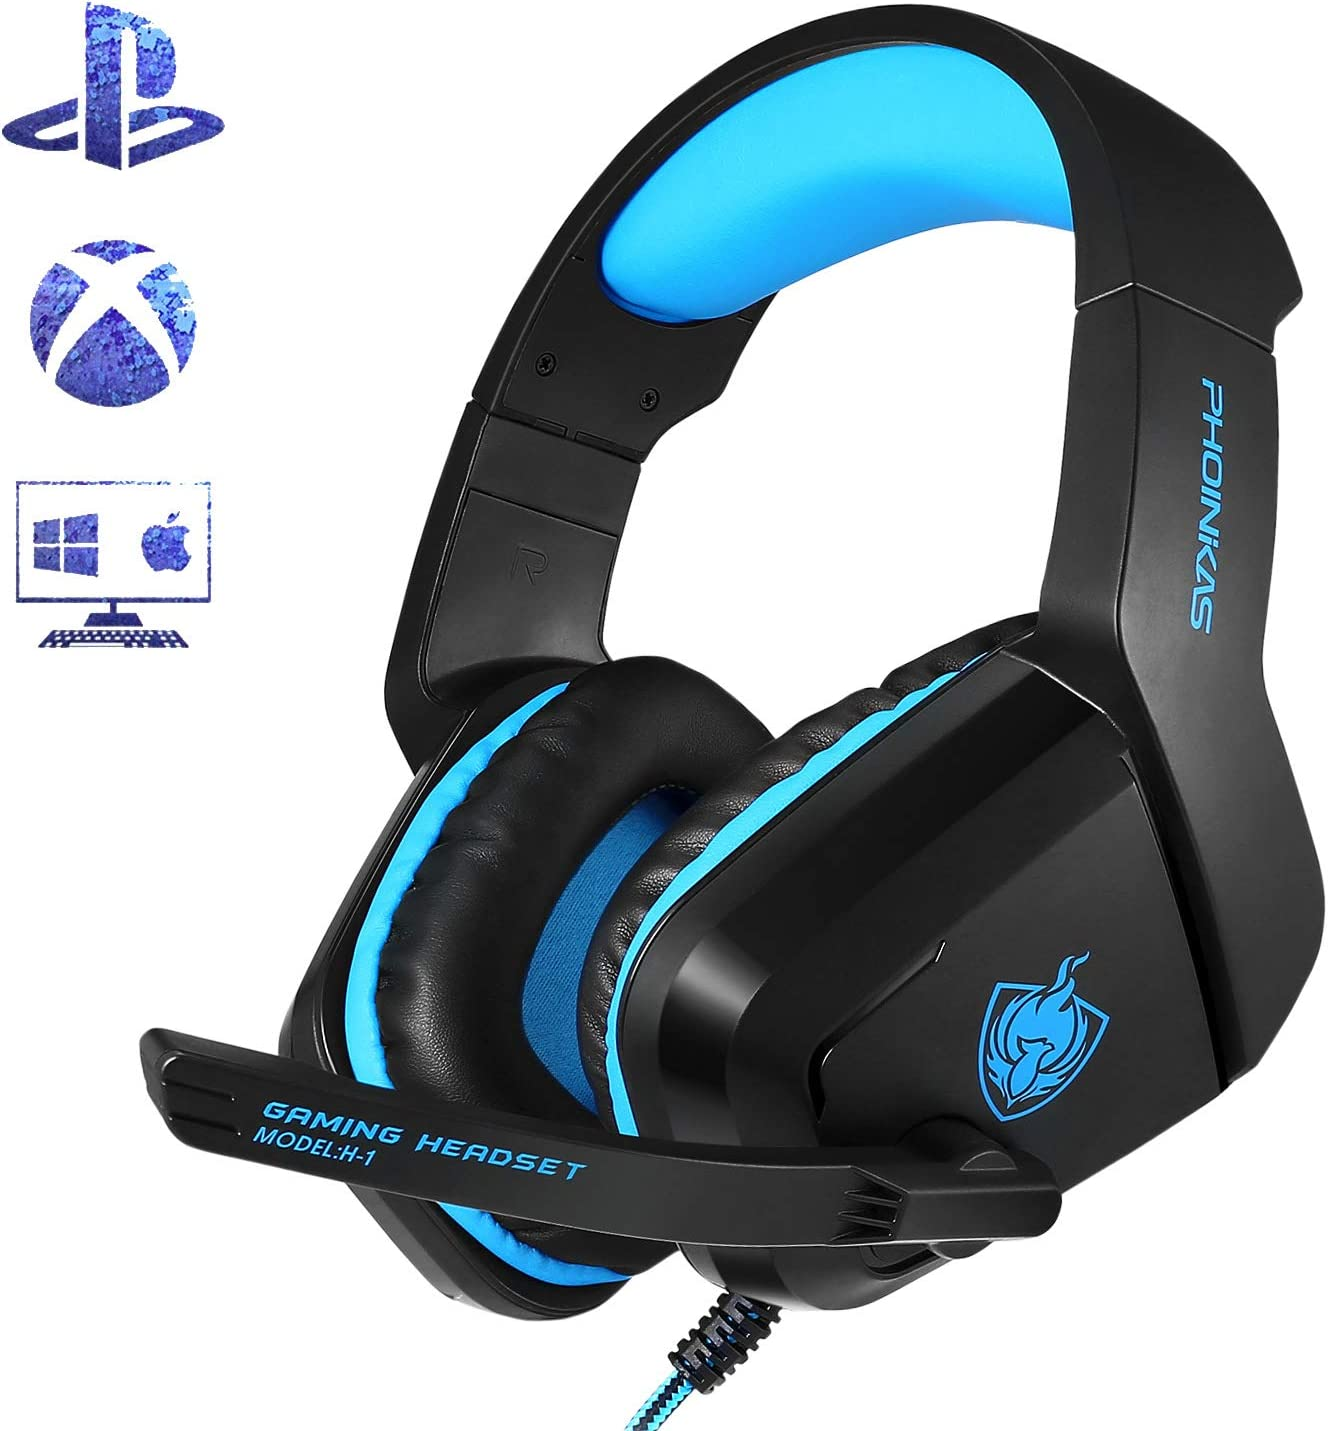 PHOINIKAS H1 3.5MM Xbox One Gaming Headset,PS4 Headset for PC, Laptop, Mac, iPad, Nintendo Switch Games, Over Ear Headphone with Microphone Bass Surround LED Light,Soft Memory Earmuffs Blue